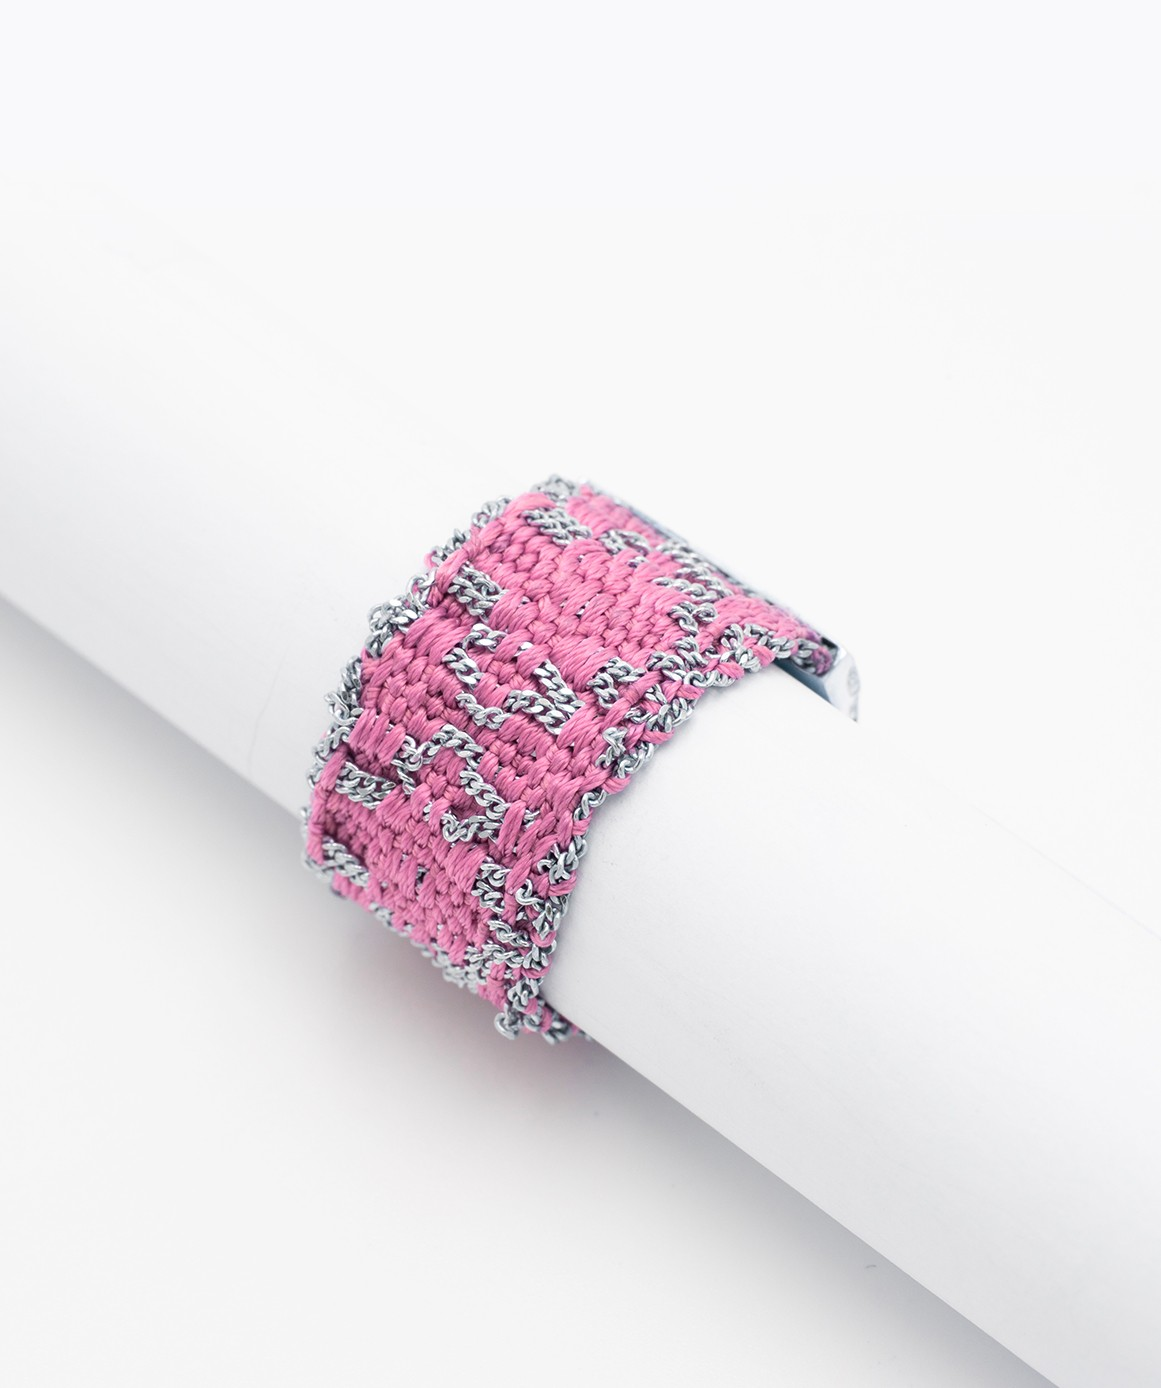 RHOMBUS Ring in Sterling Silver Rhodium plated. Fabric: Pink